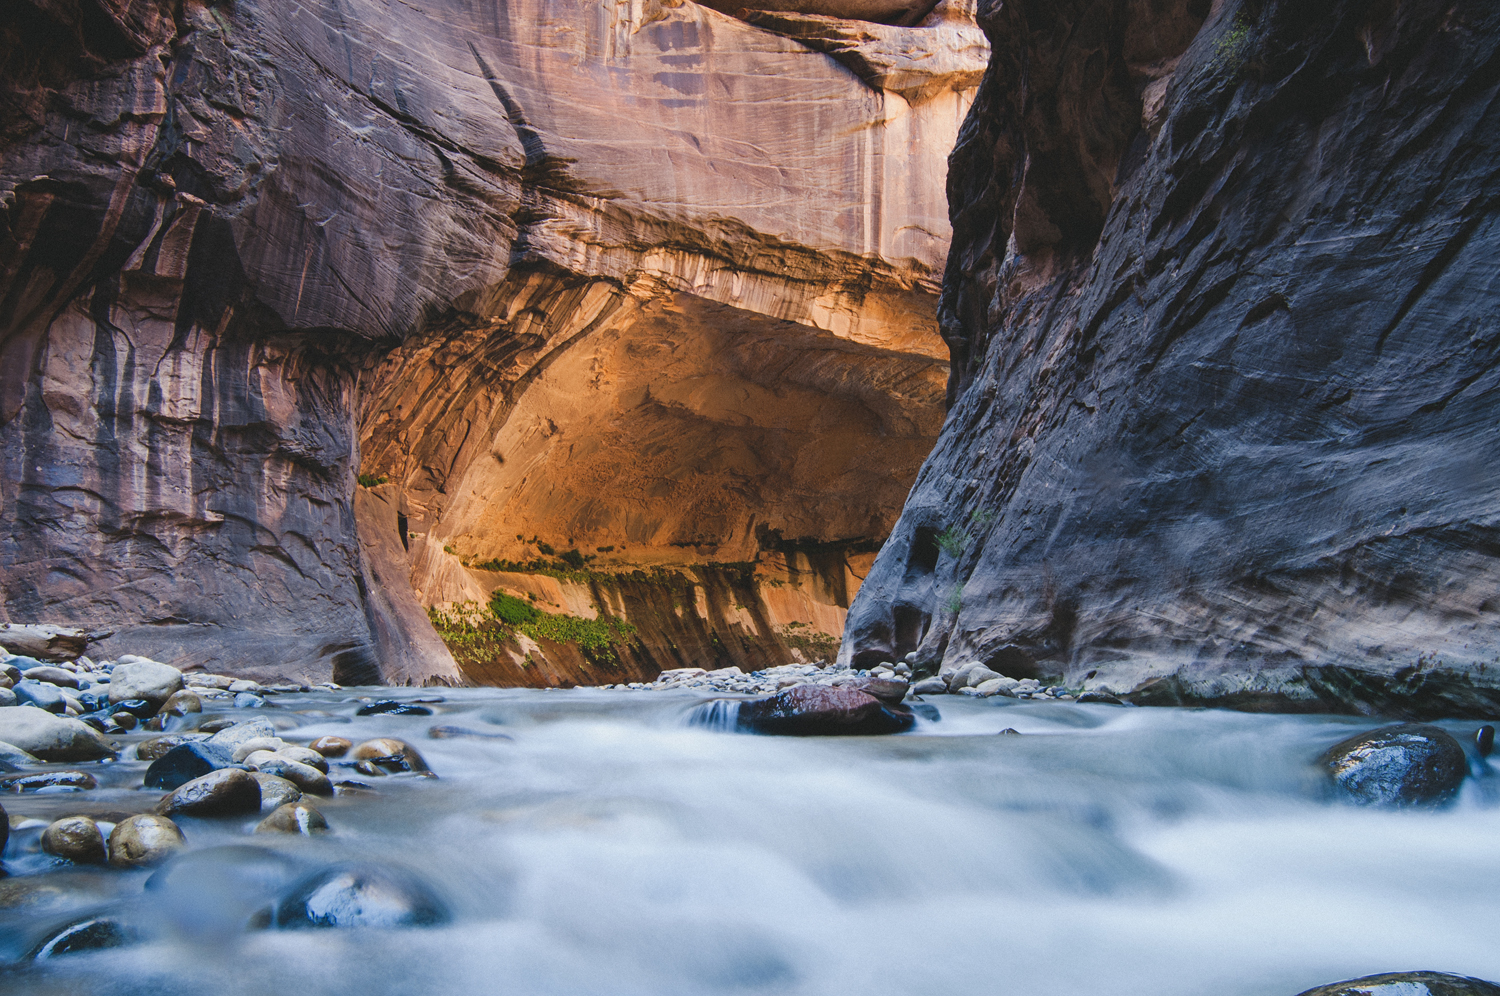 08_Zion2013_0113_FINAL_squarespace.jpg